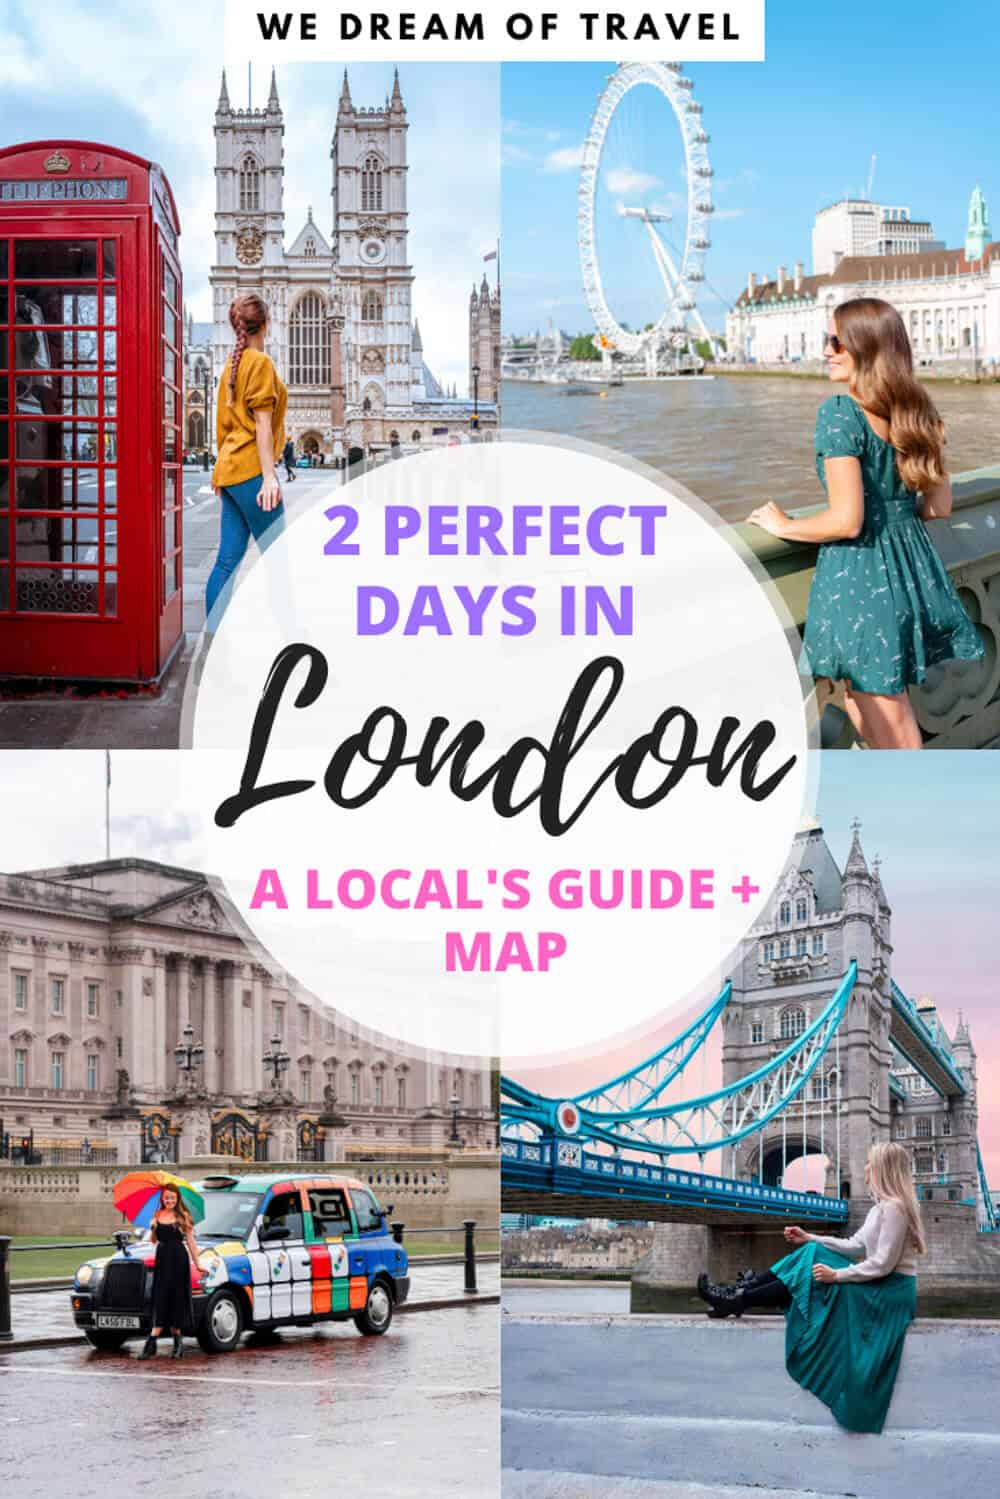 Wondering how to spend 2 days in London?  This local's guide will help you discover what to see and things to do in London to ensure you have the best trip possible.  Plus interactive map and local tips.